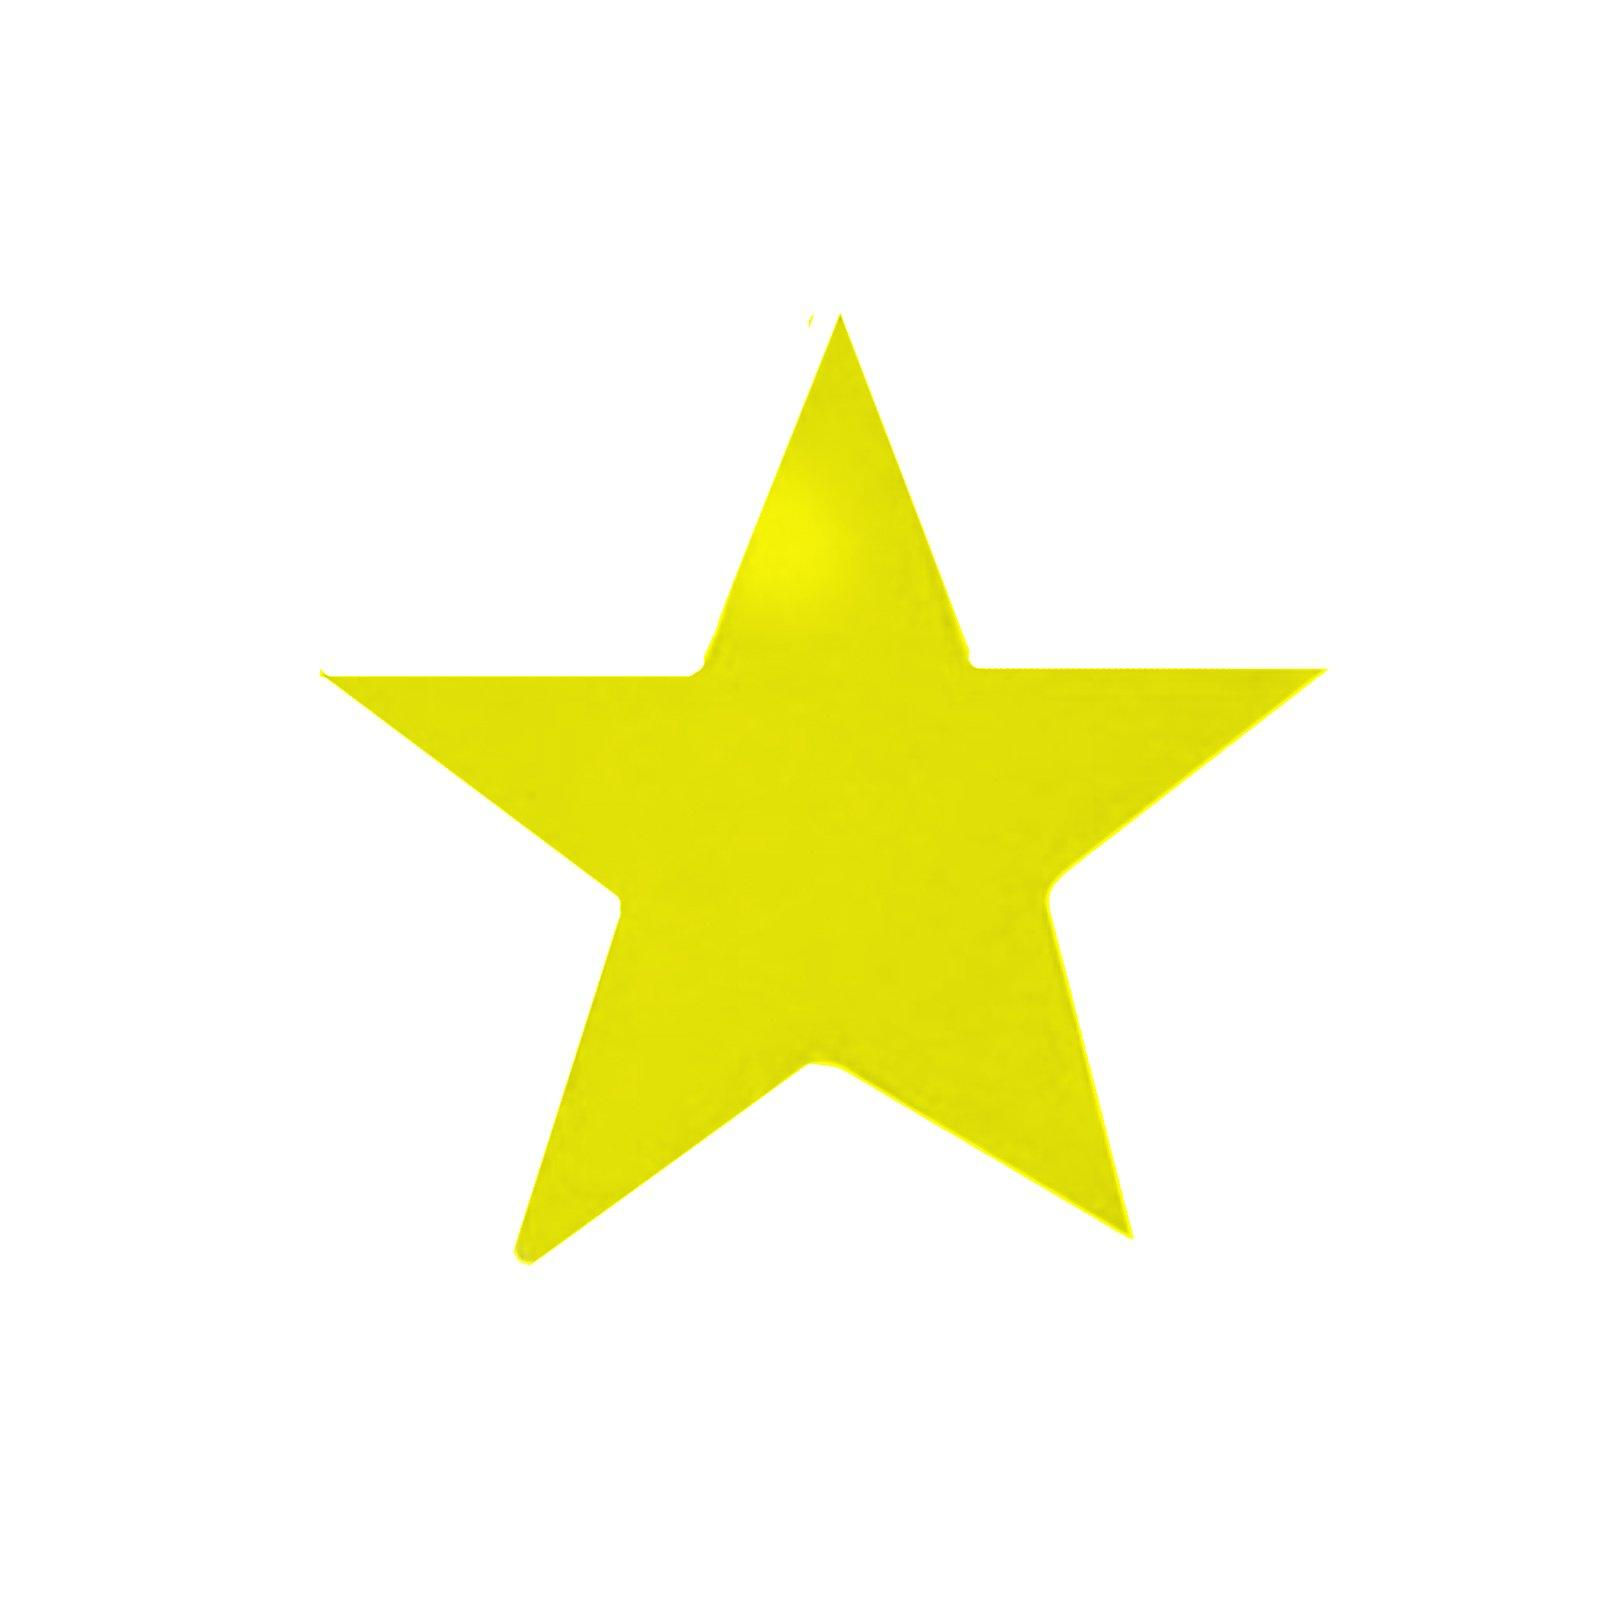 Small Gold Star Clip Art free image.